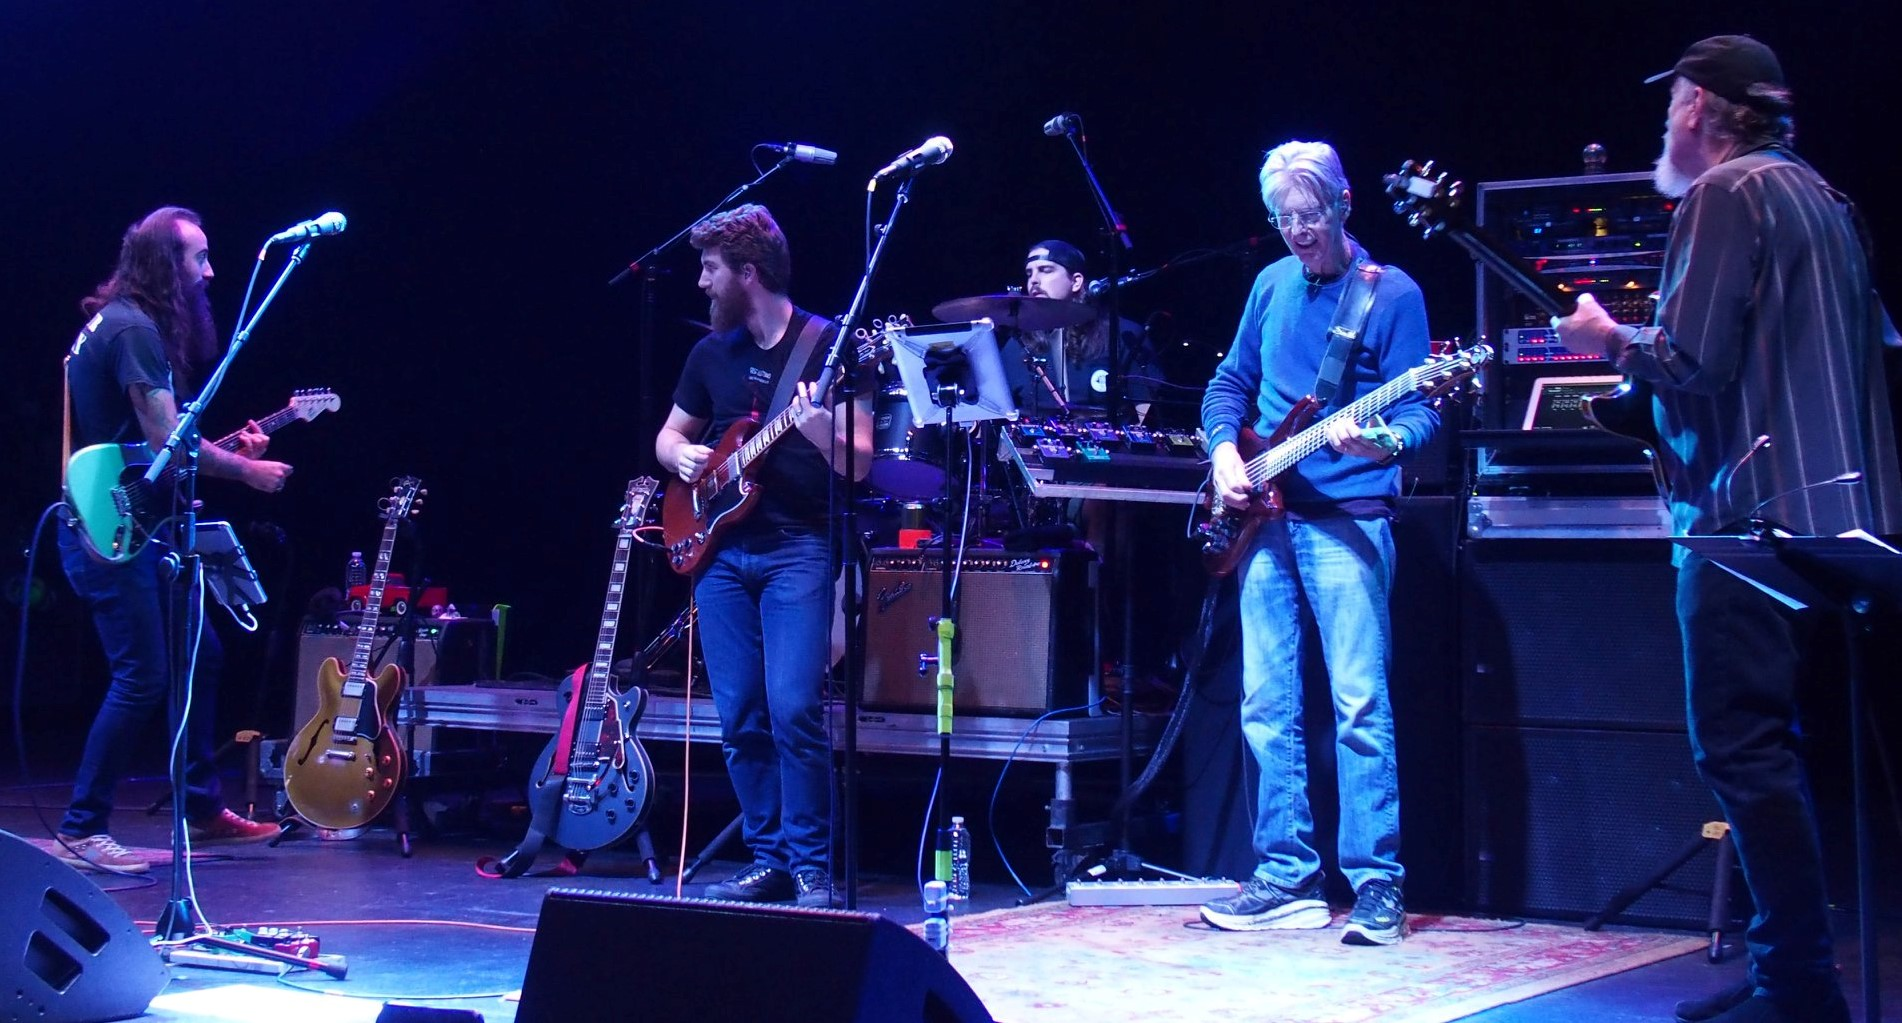 Phil Lesh and the Terrapin Family Band with special guest John Scofield